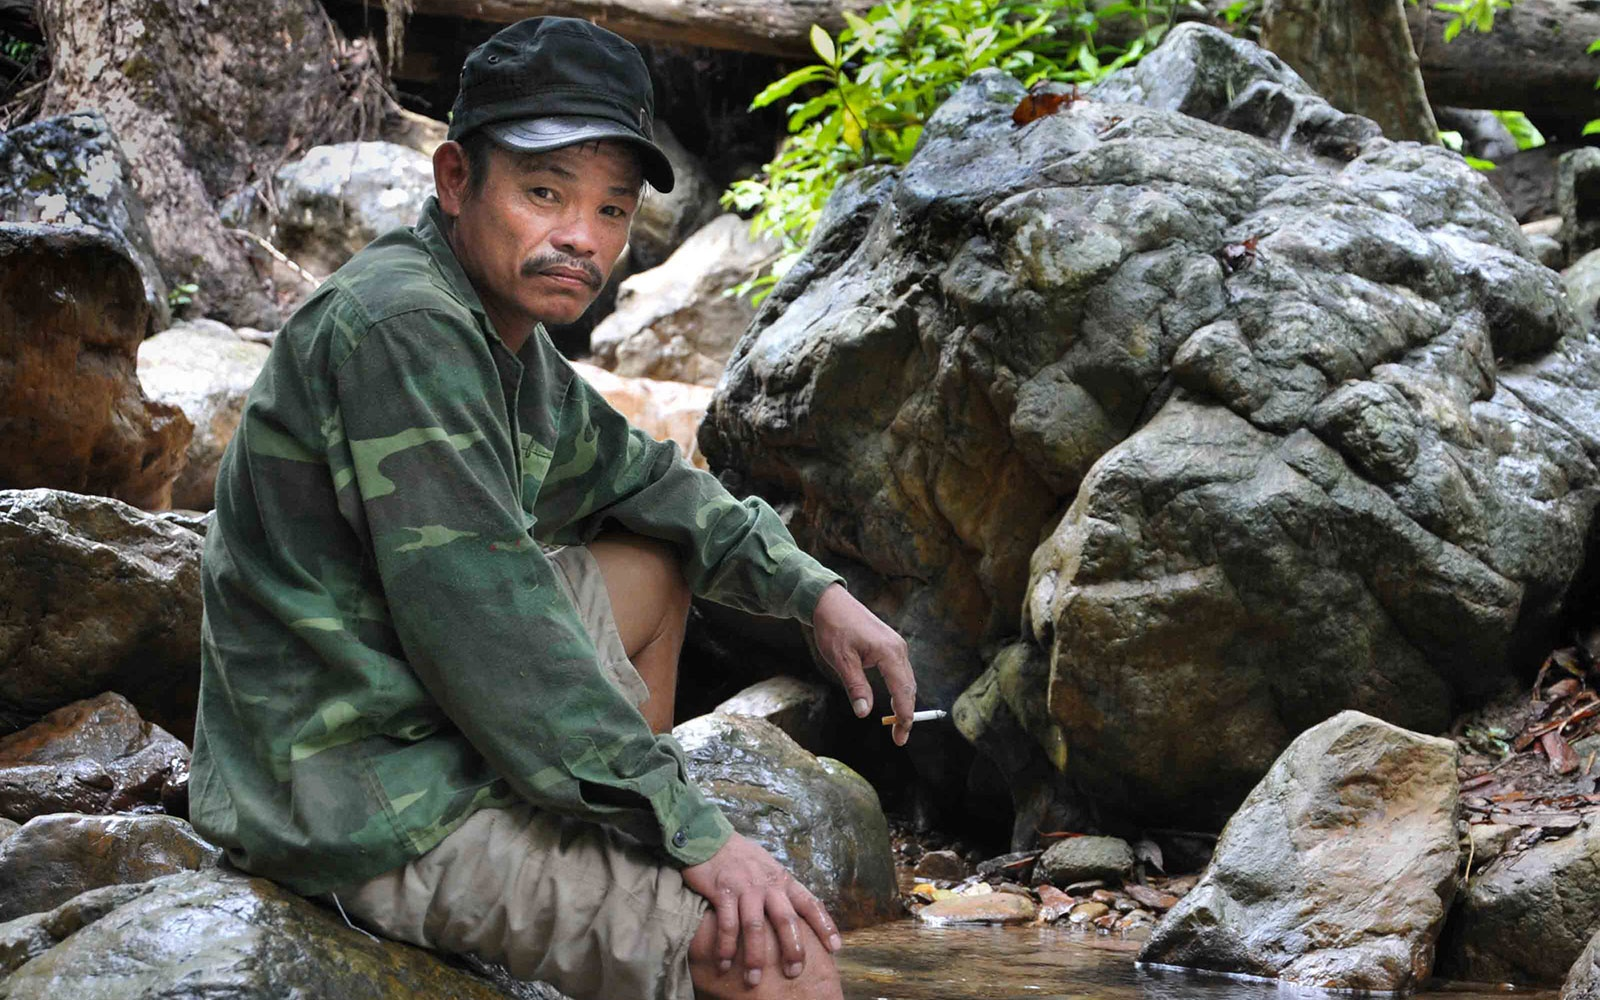 A porter enjoys a cigarette after the steep decent to the valley floor.